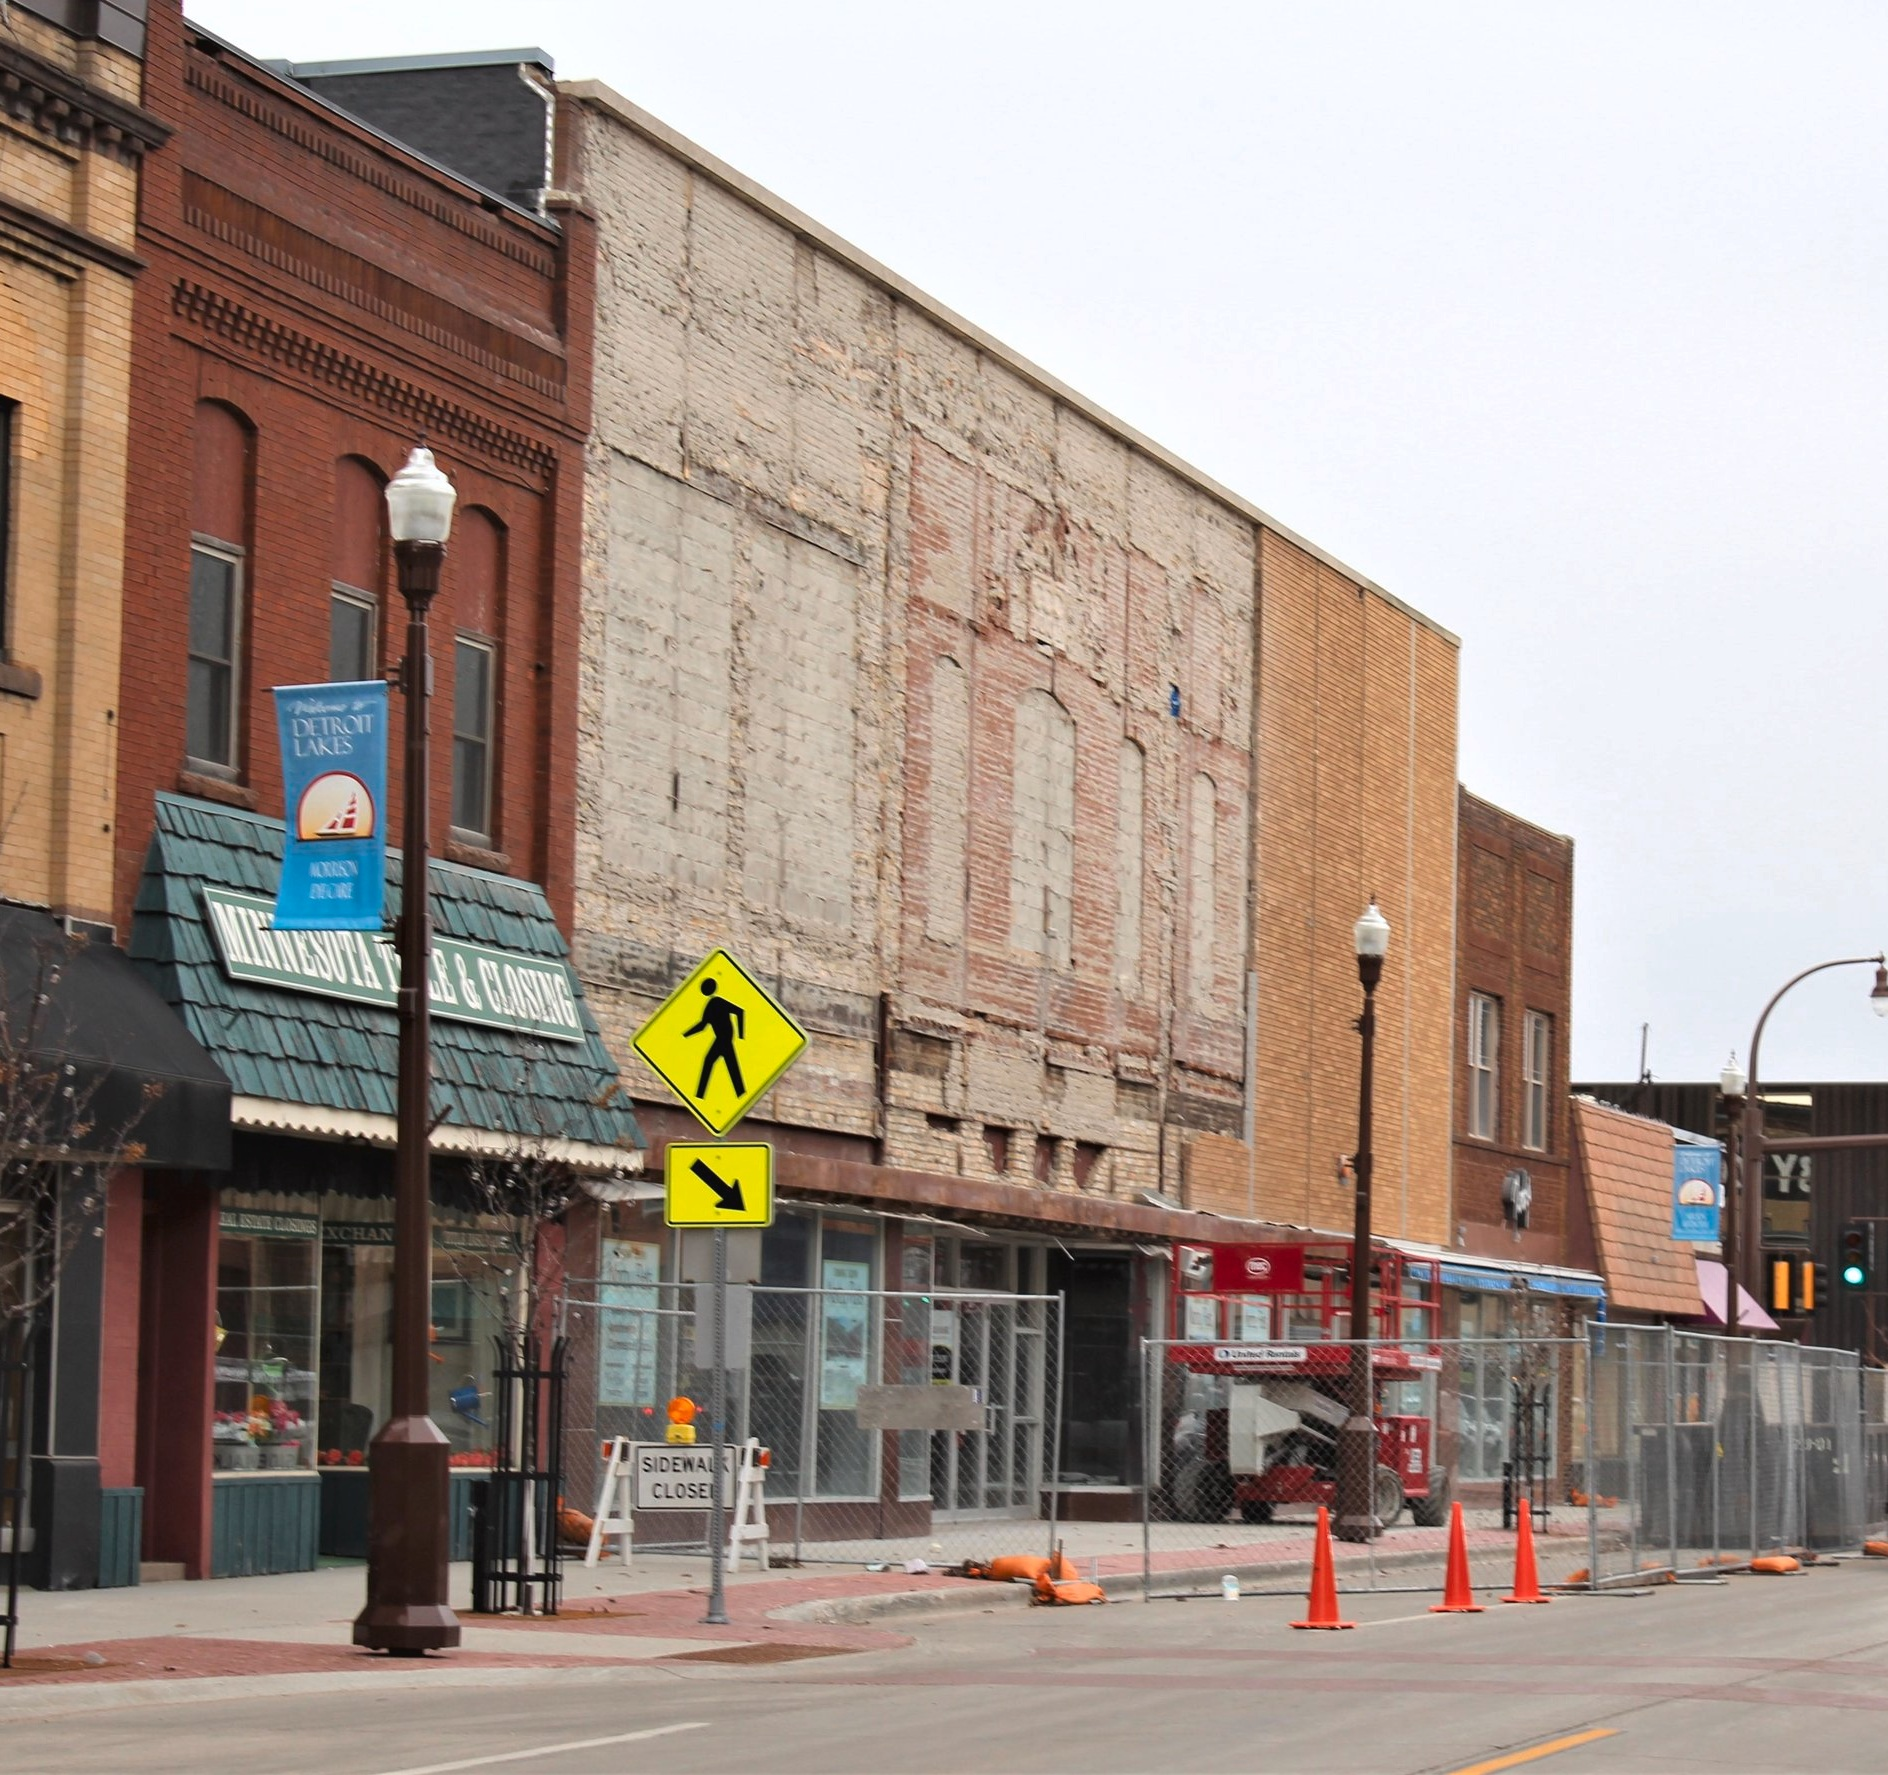 As of Thursday, April 11, about two-thirds of the brick facade that had defined the look of Norby's Department Store since 1959 had been removed. Now under new ownership, the building is being renovated and returned to its original look of more than 100 years ago. It will have commercial space on the main level and apartments upstairs, and will go by the name of Norby Flats. (Marie Johnson / Tribune)